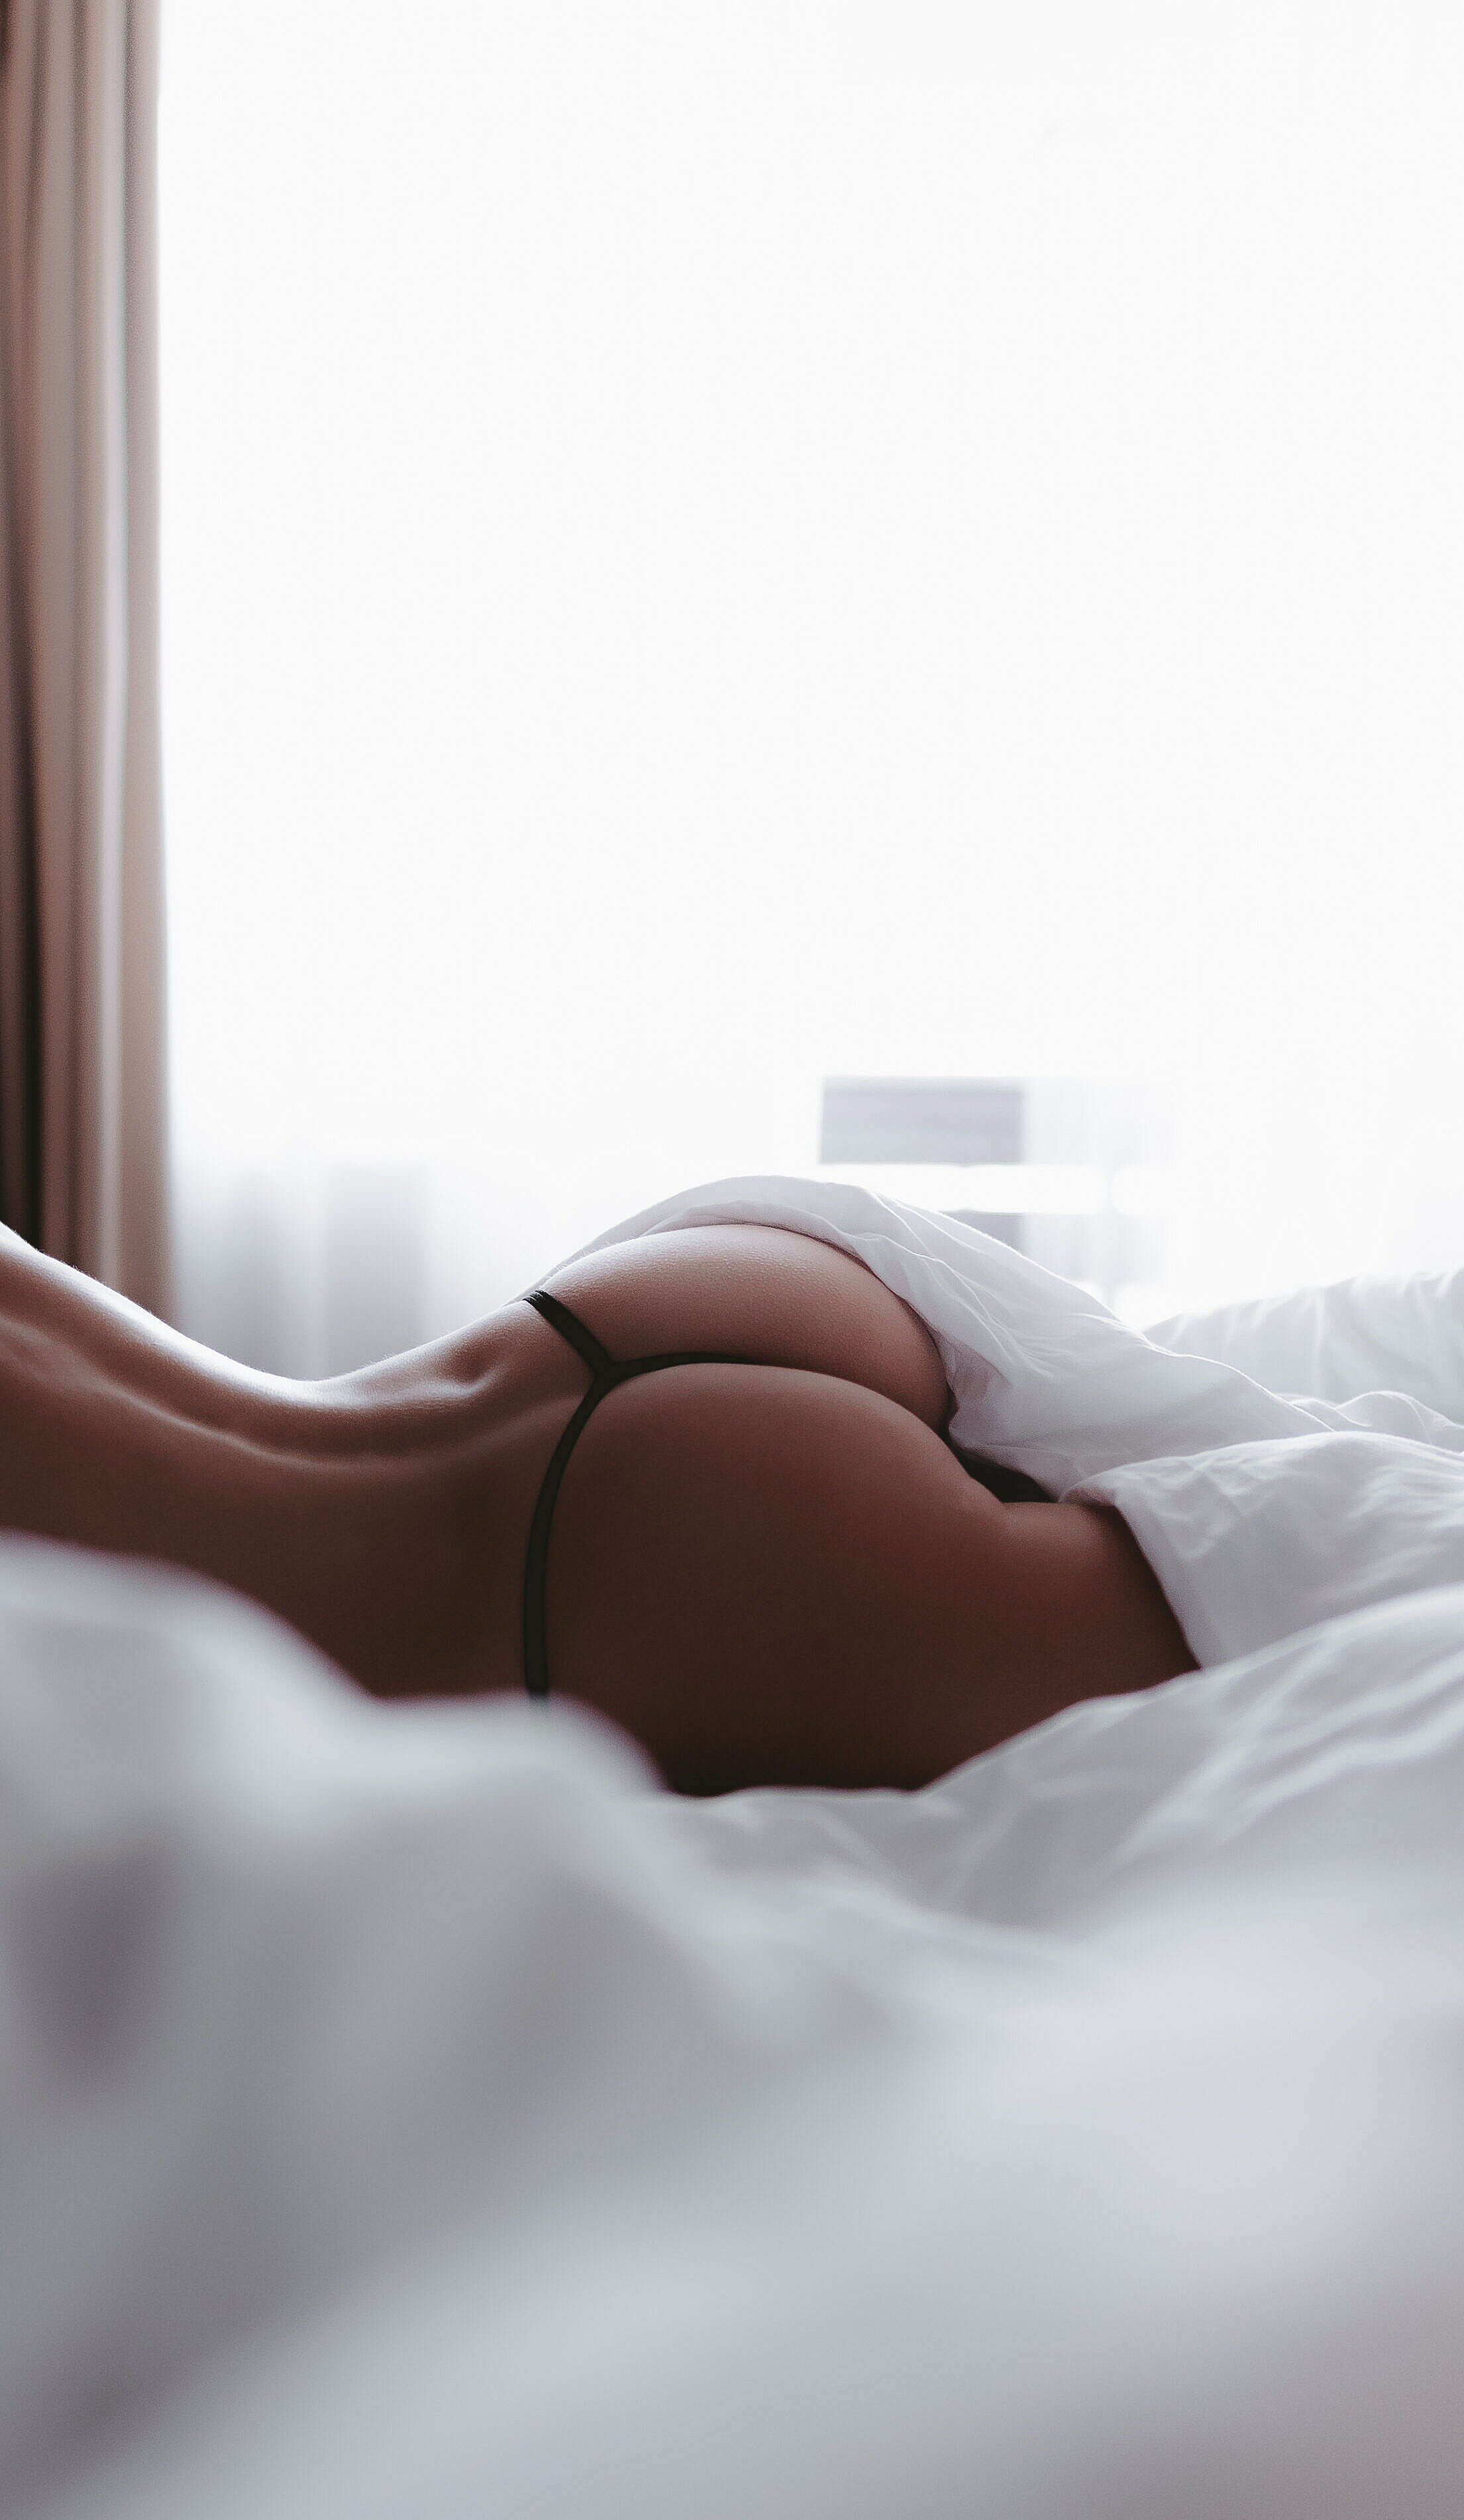 Perfect Woman Ass in Bed Sexy iPhone Wallpaper Free Stock Photo